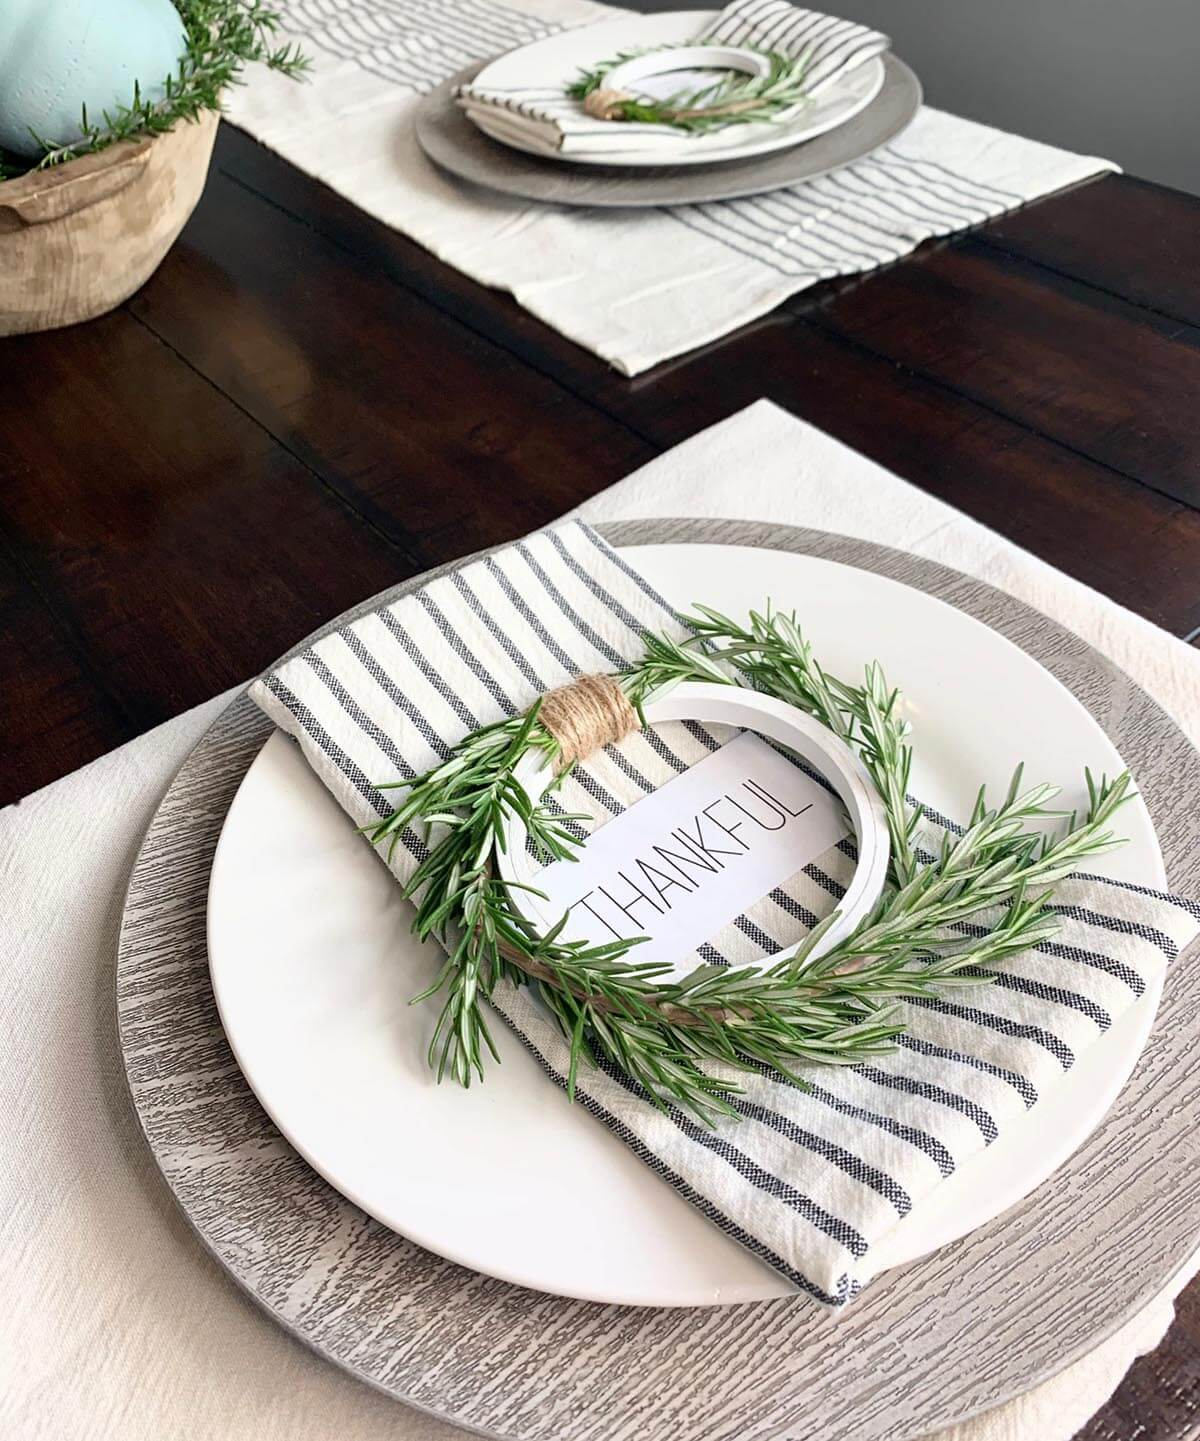 Embroidery Hoop Napkin Rings with Greenery